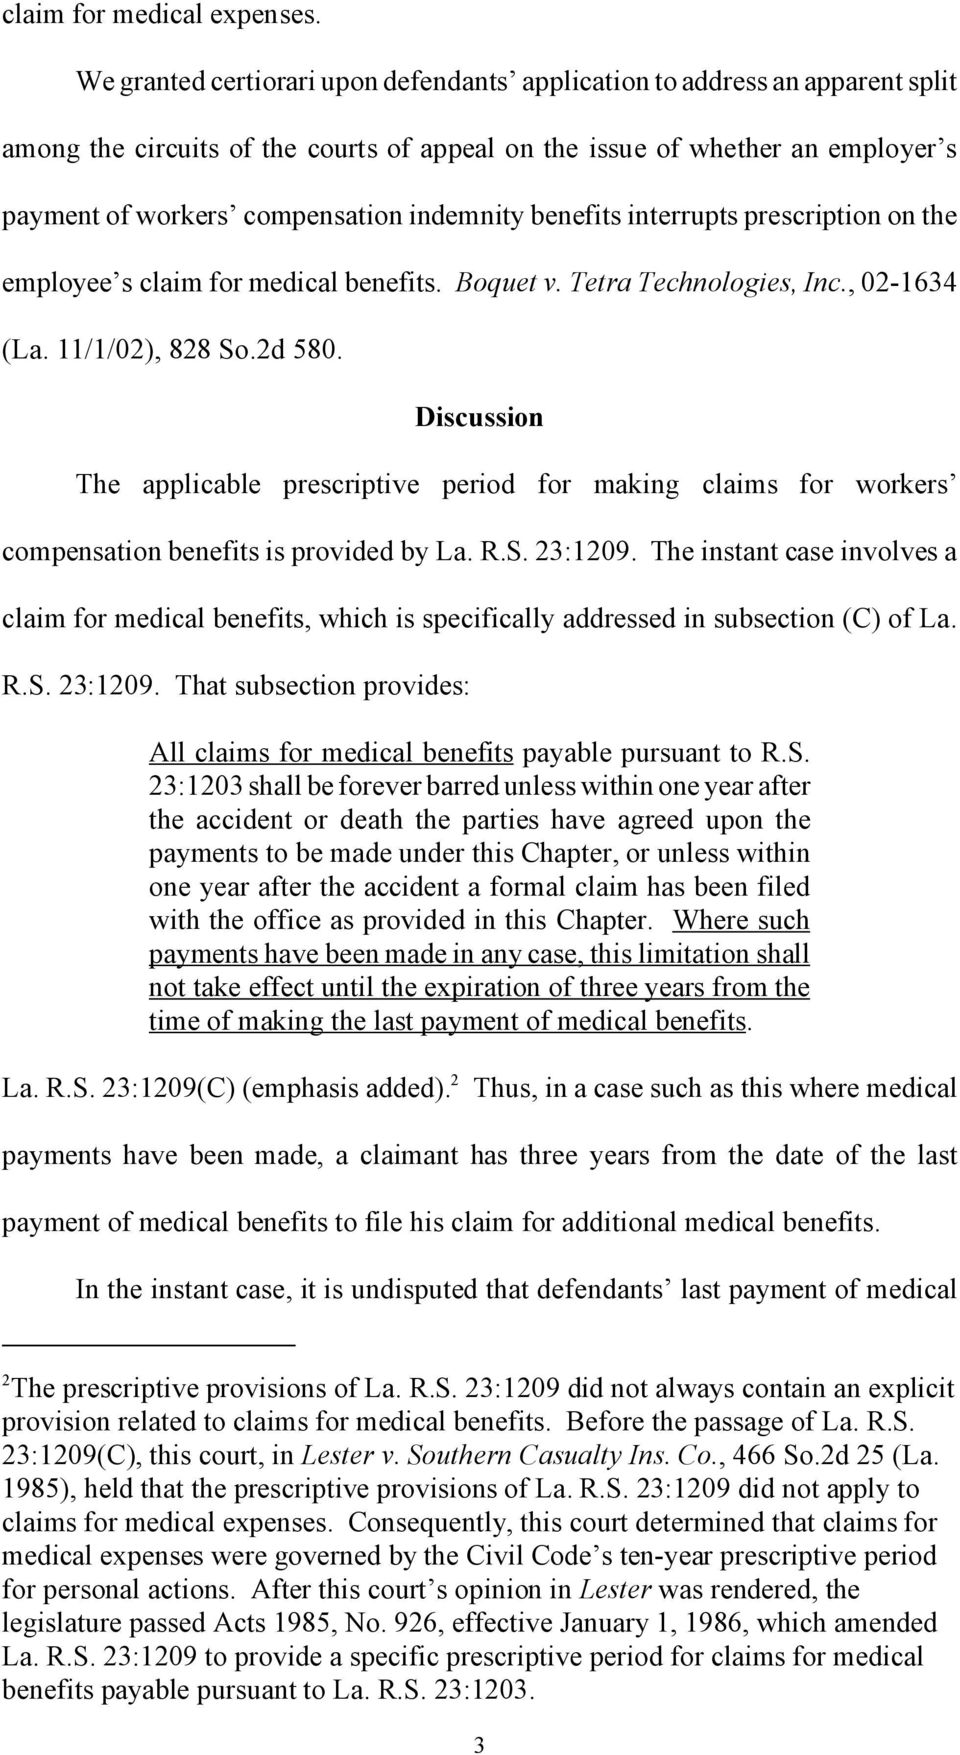 indemnity benefits interrupts prescription on the employee s claim for medical benefits. Boquet v. Tetra Technologies, Inc., 02-1634 (La. 11/1/02), 828 So.2d 580.